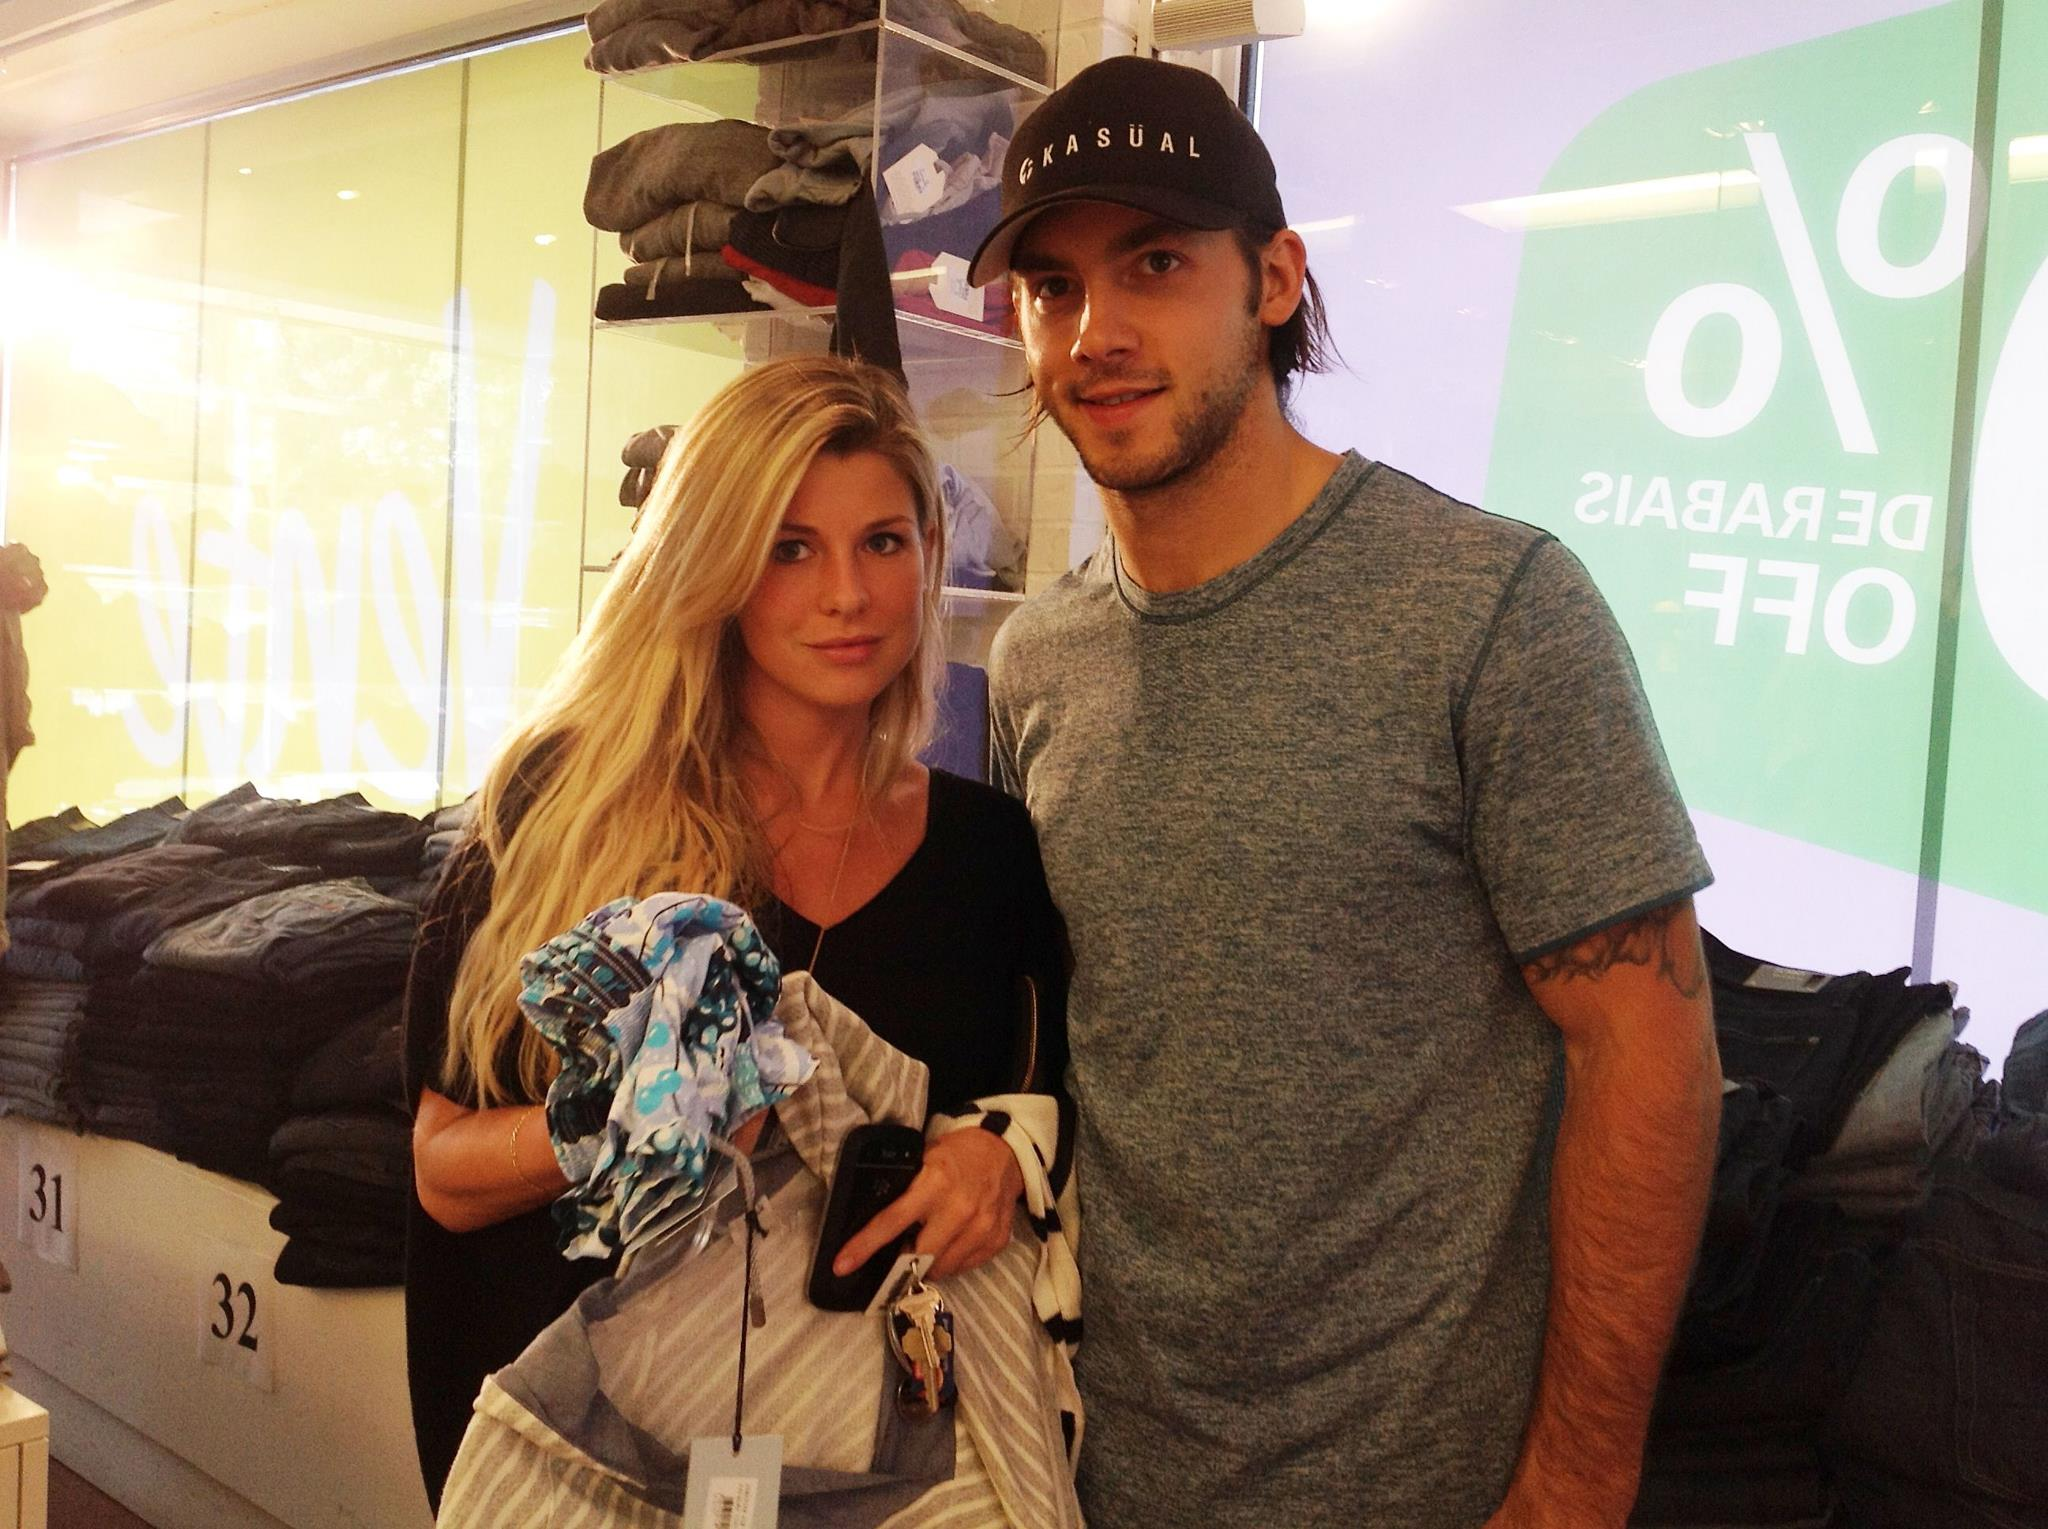 Kristopher LeTang with cool, friendly, fun, Girlfriend Catherine Laflamme